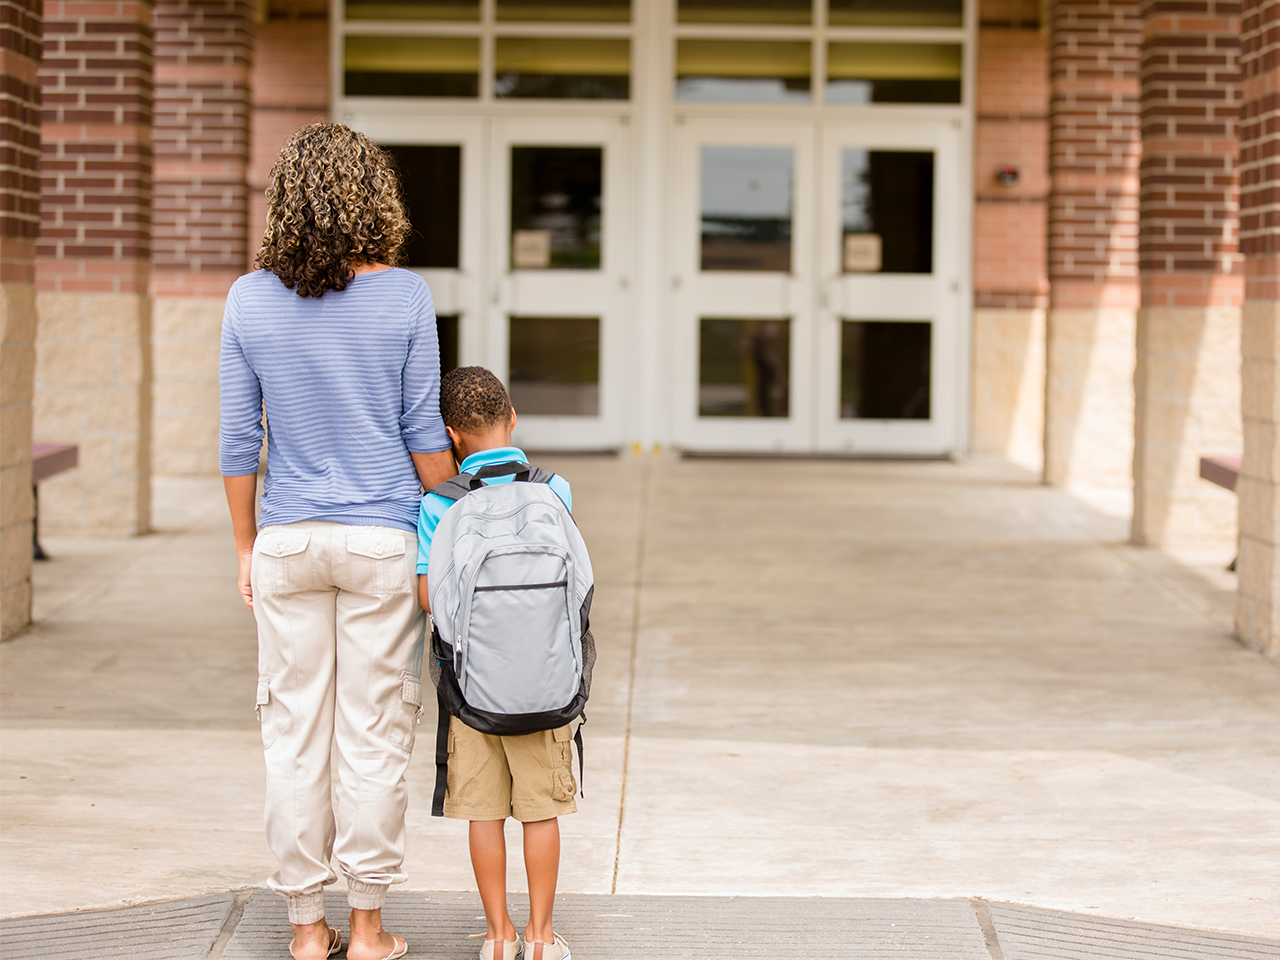 A mom and her son standing outside the school doors